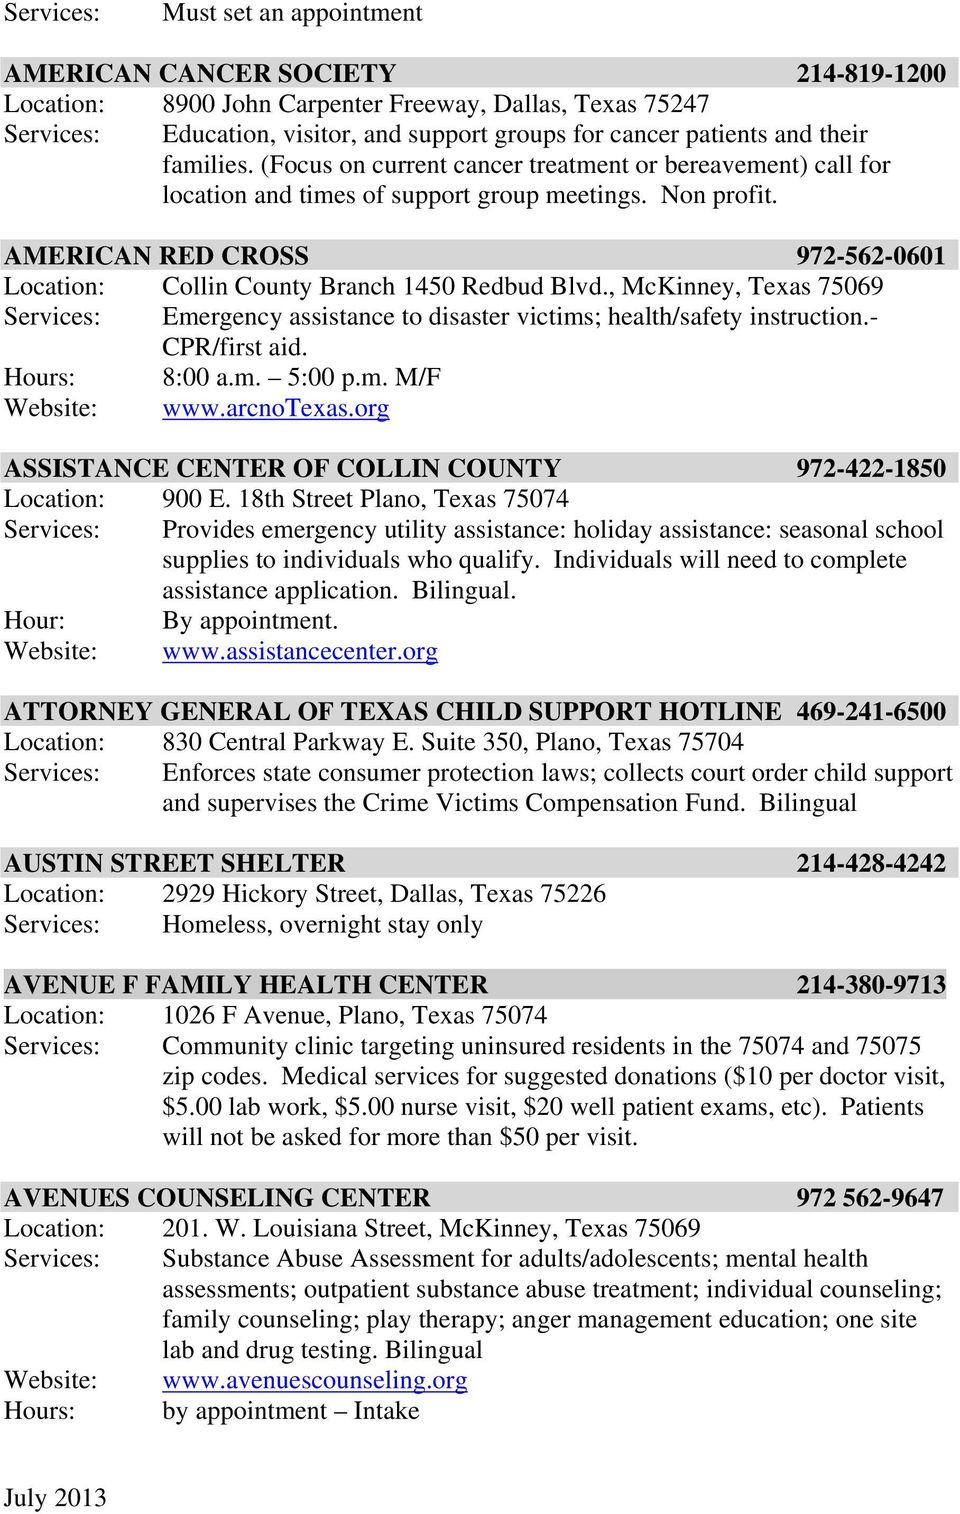 AMERICAN RED CROSS 972-562-0601 Location: Collin County Branch 1450 Redbud Blvd., McKinney, Texas 75069 Services: Emergency assistance to disaster victims; health/safety instruction.- CPR/first aid.